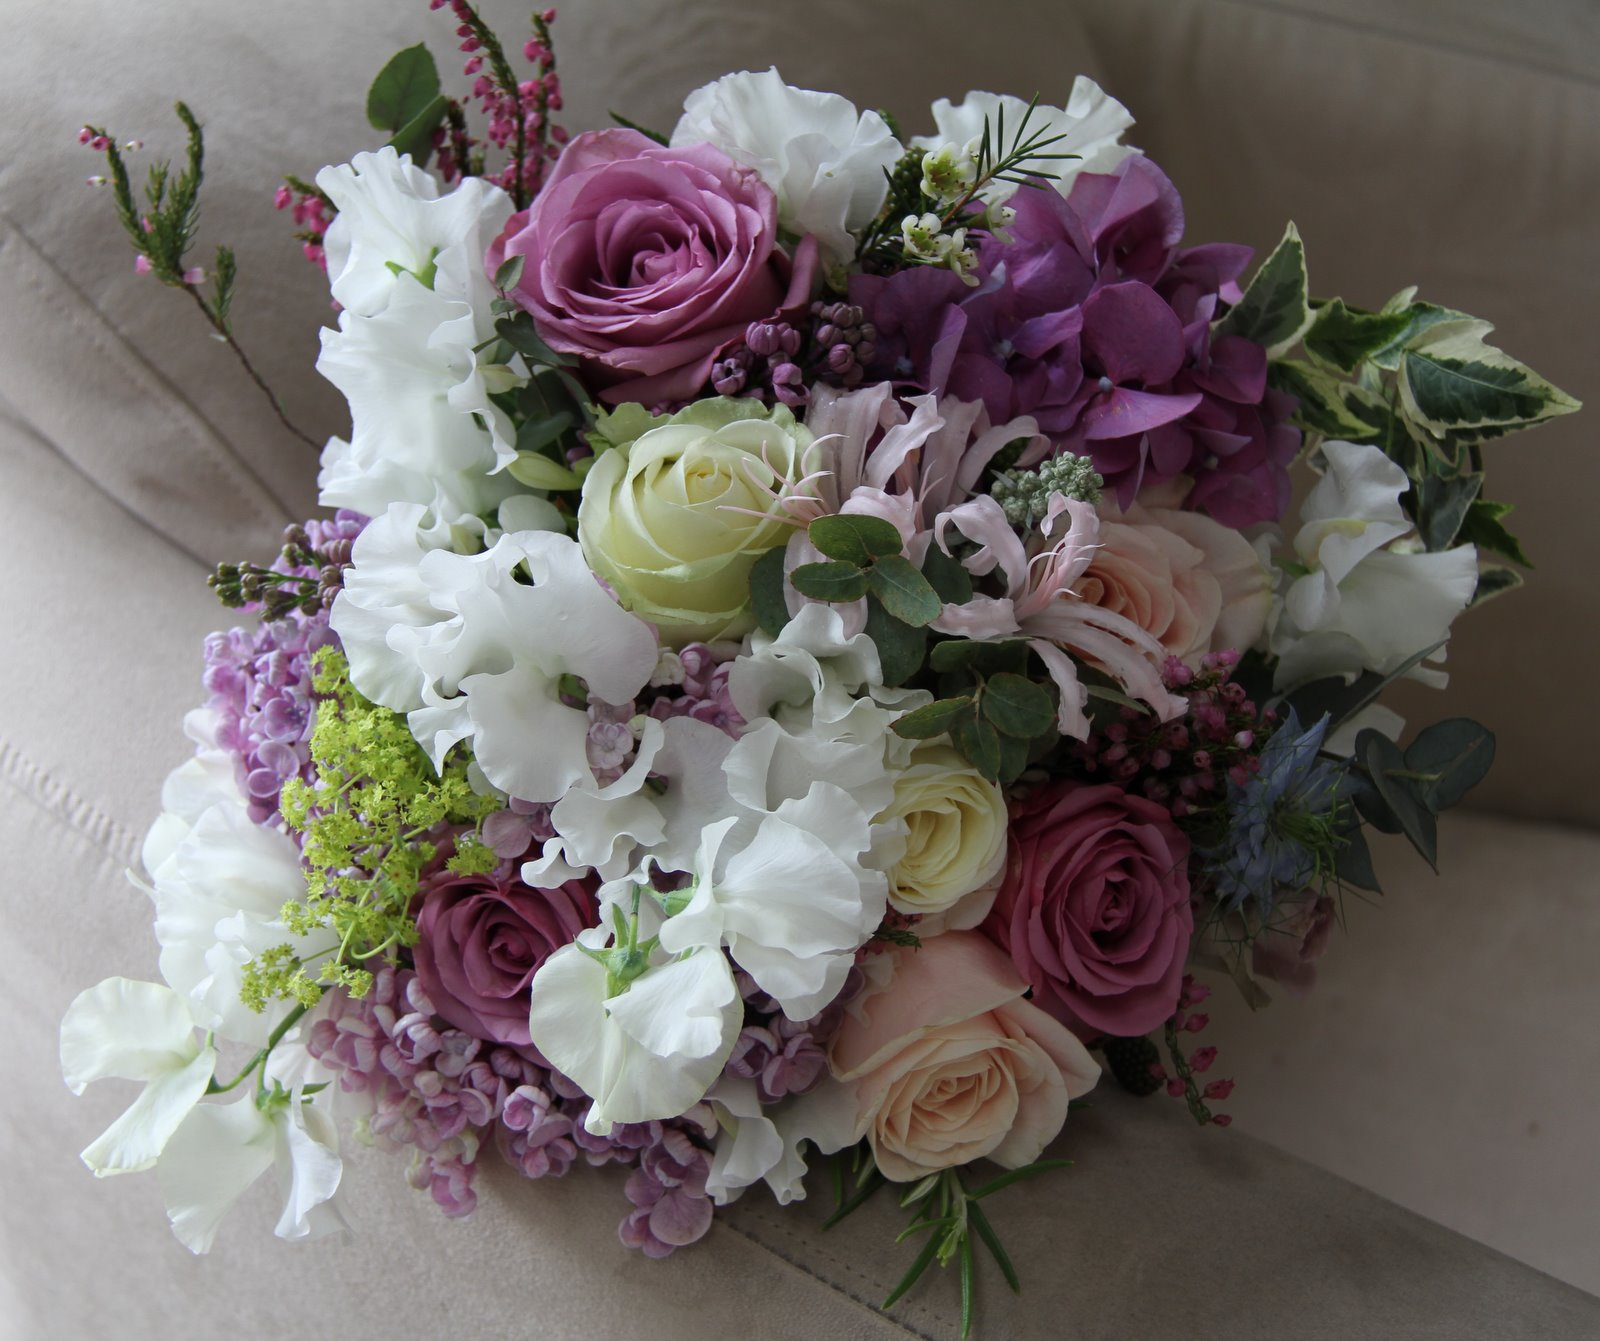 Wedding Flowers Lilac: The Flower Magician: Victorian Lilac Wedding Bouquet